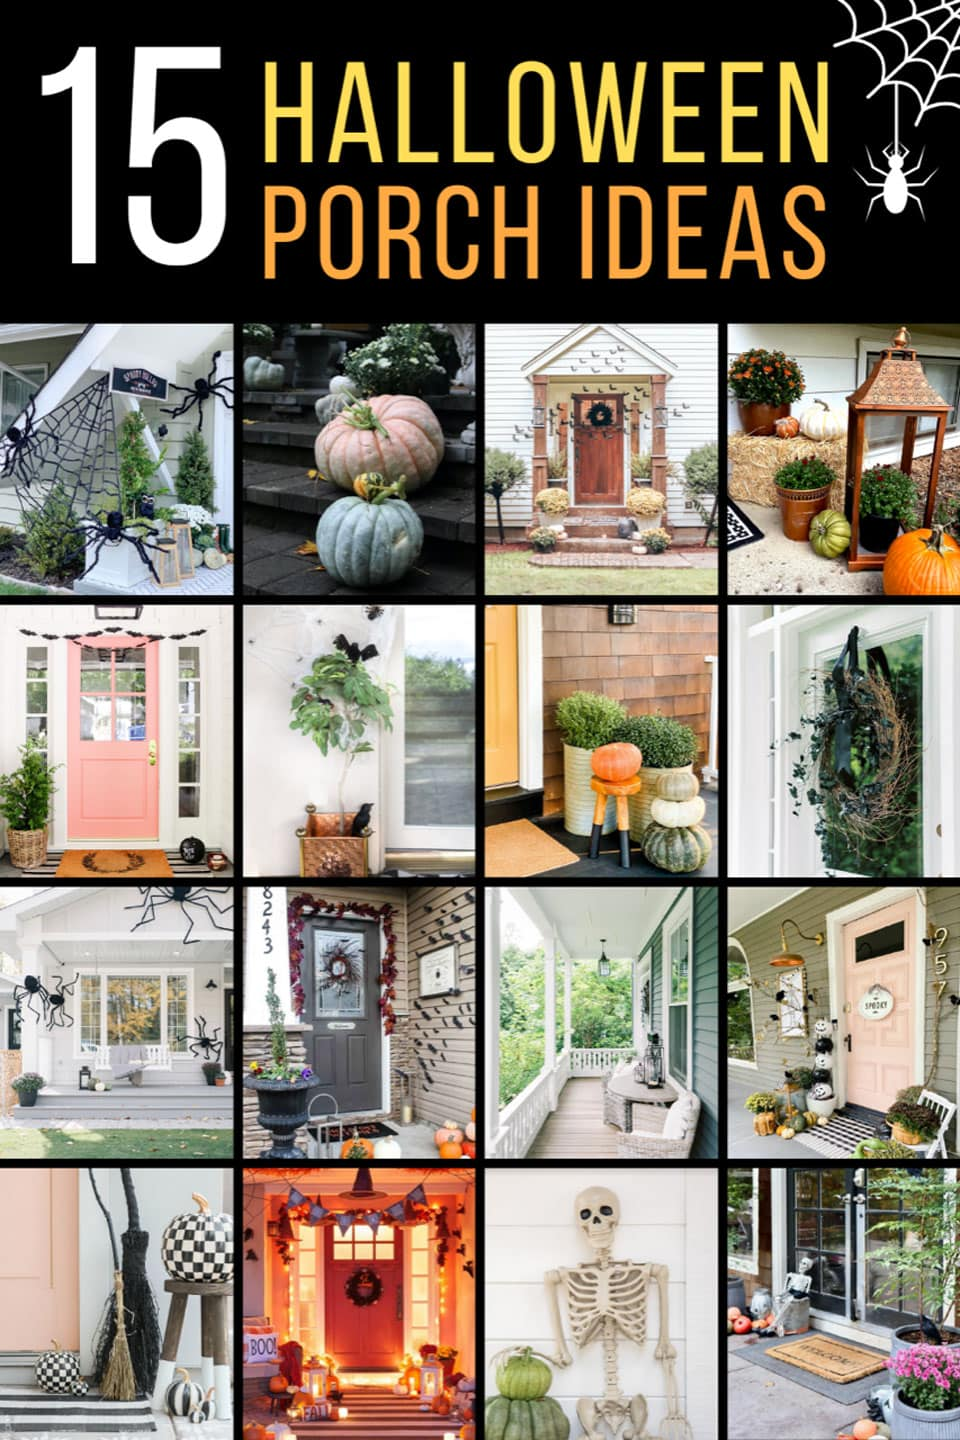 15 ideas for your Halloween Porch